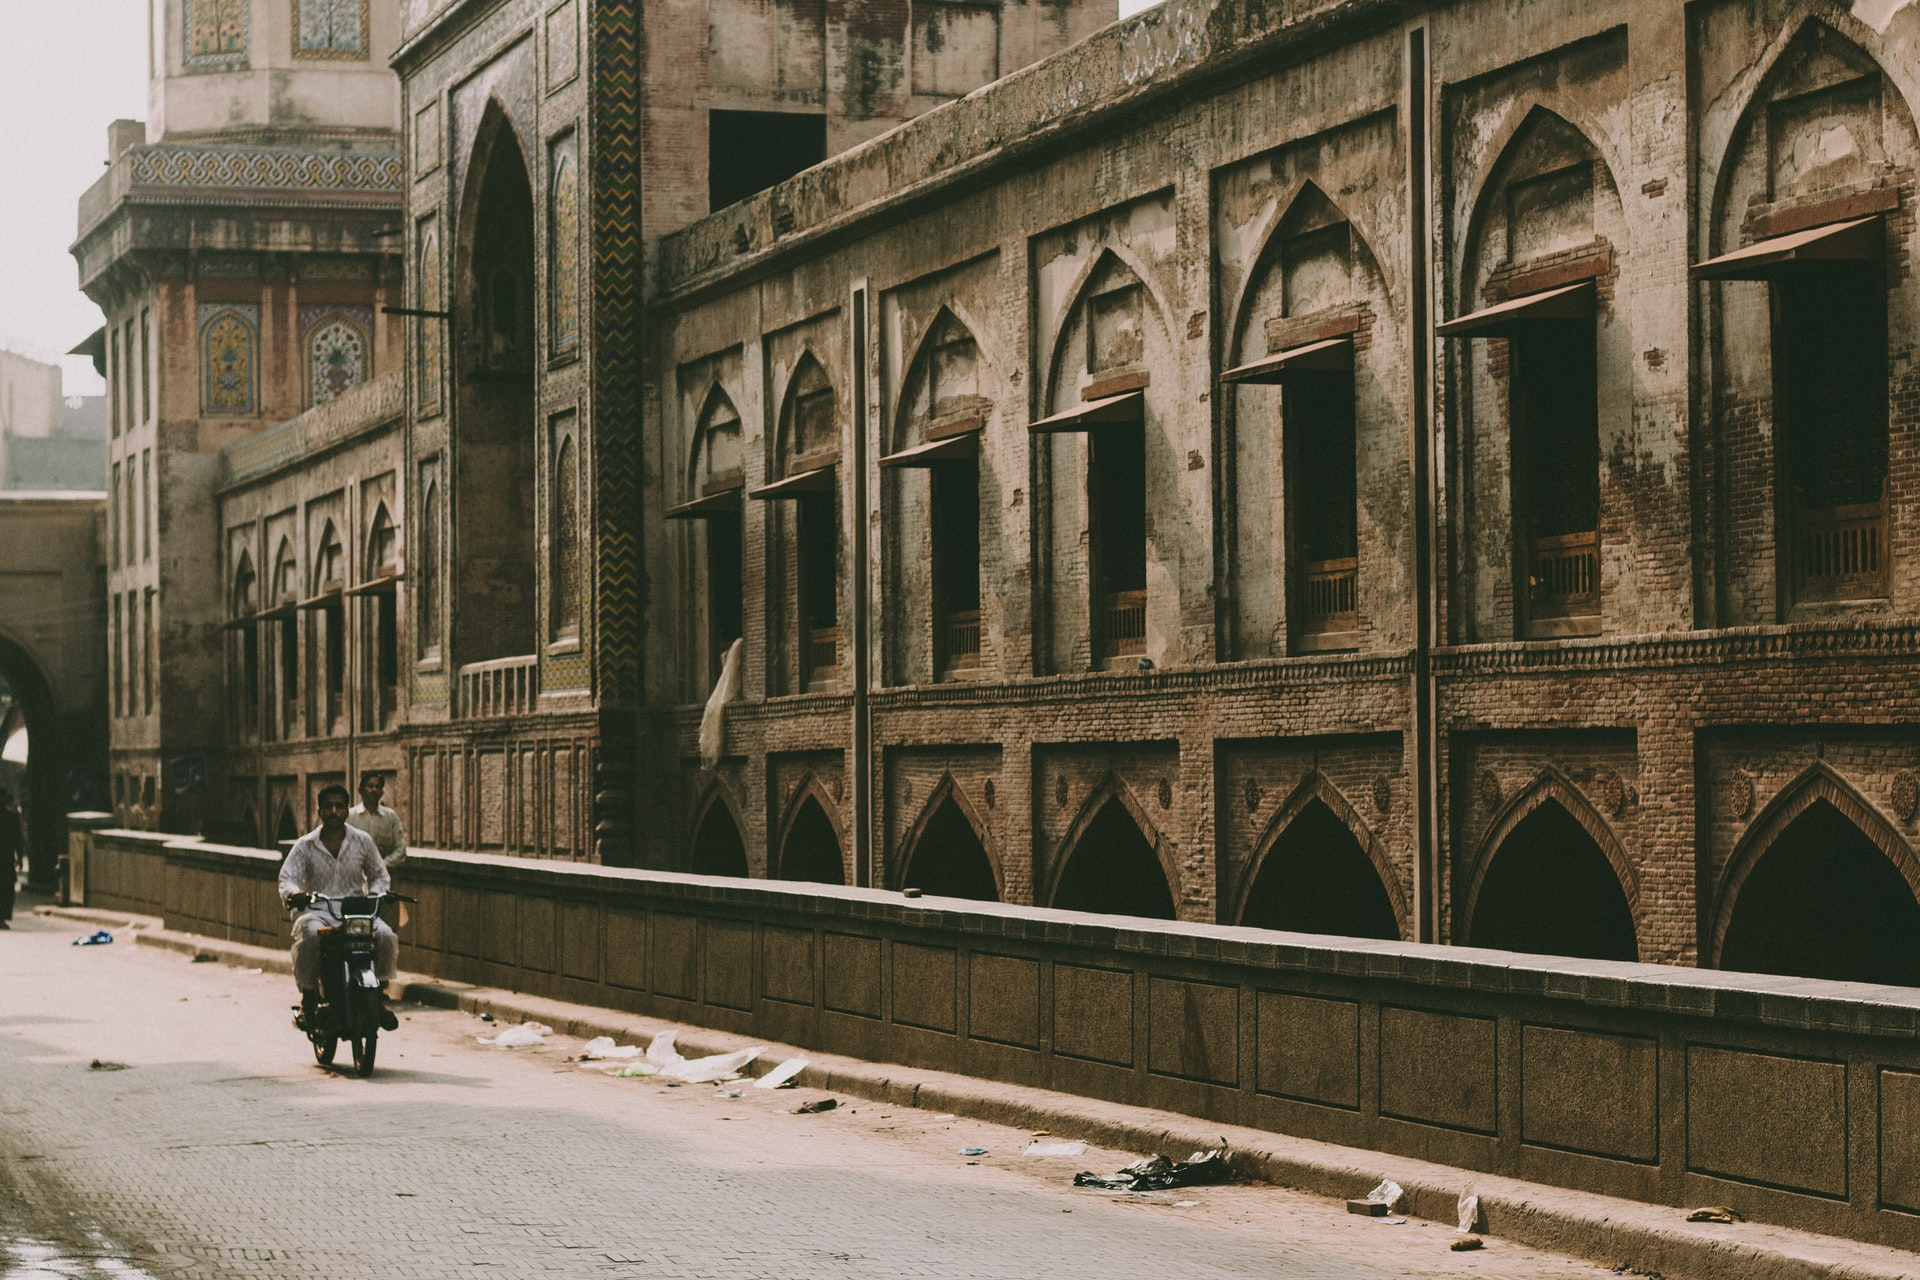 Pakistani Church meets COVID-19 challenges